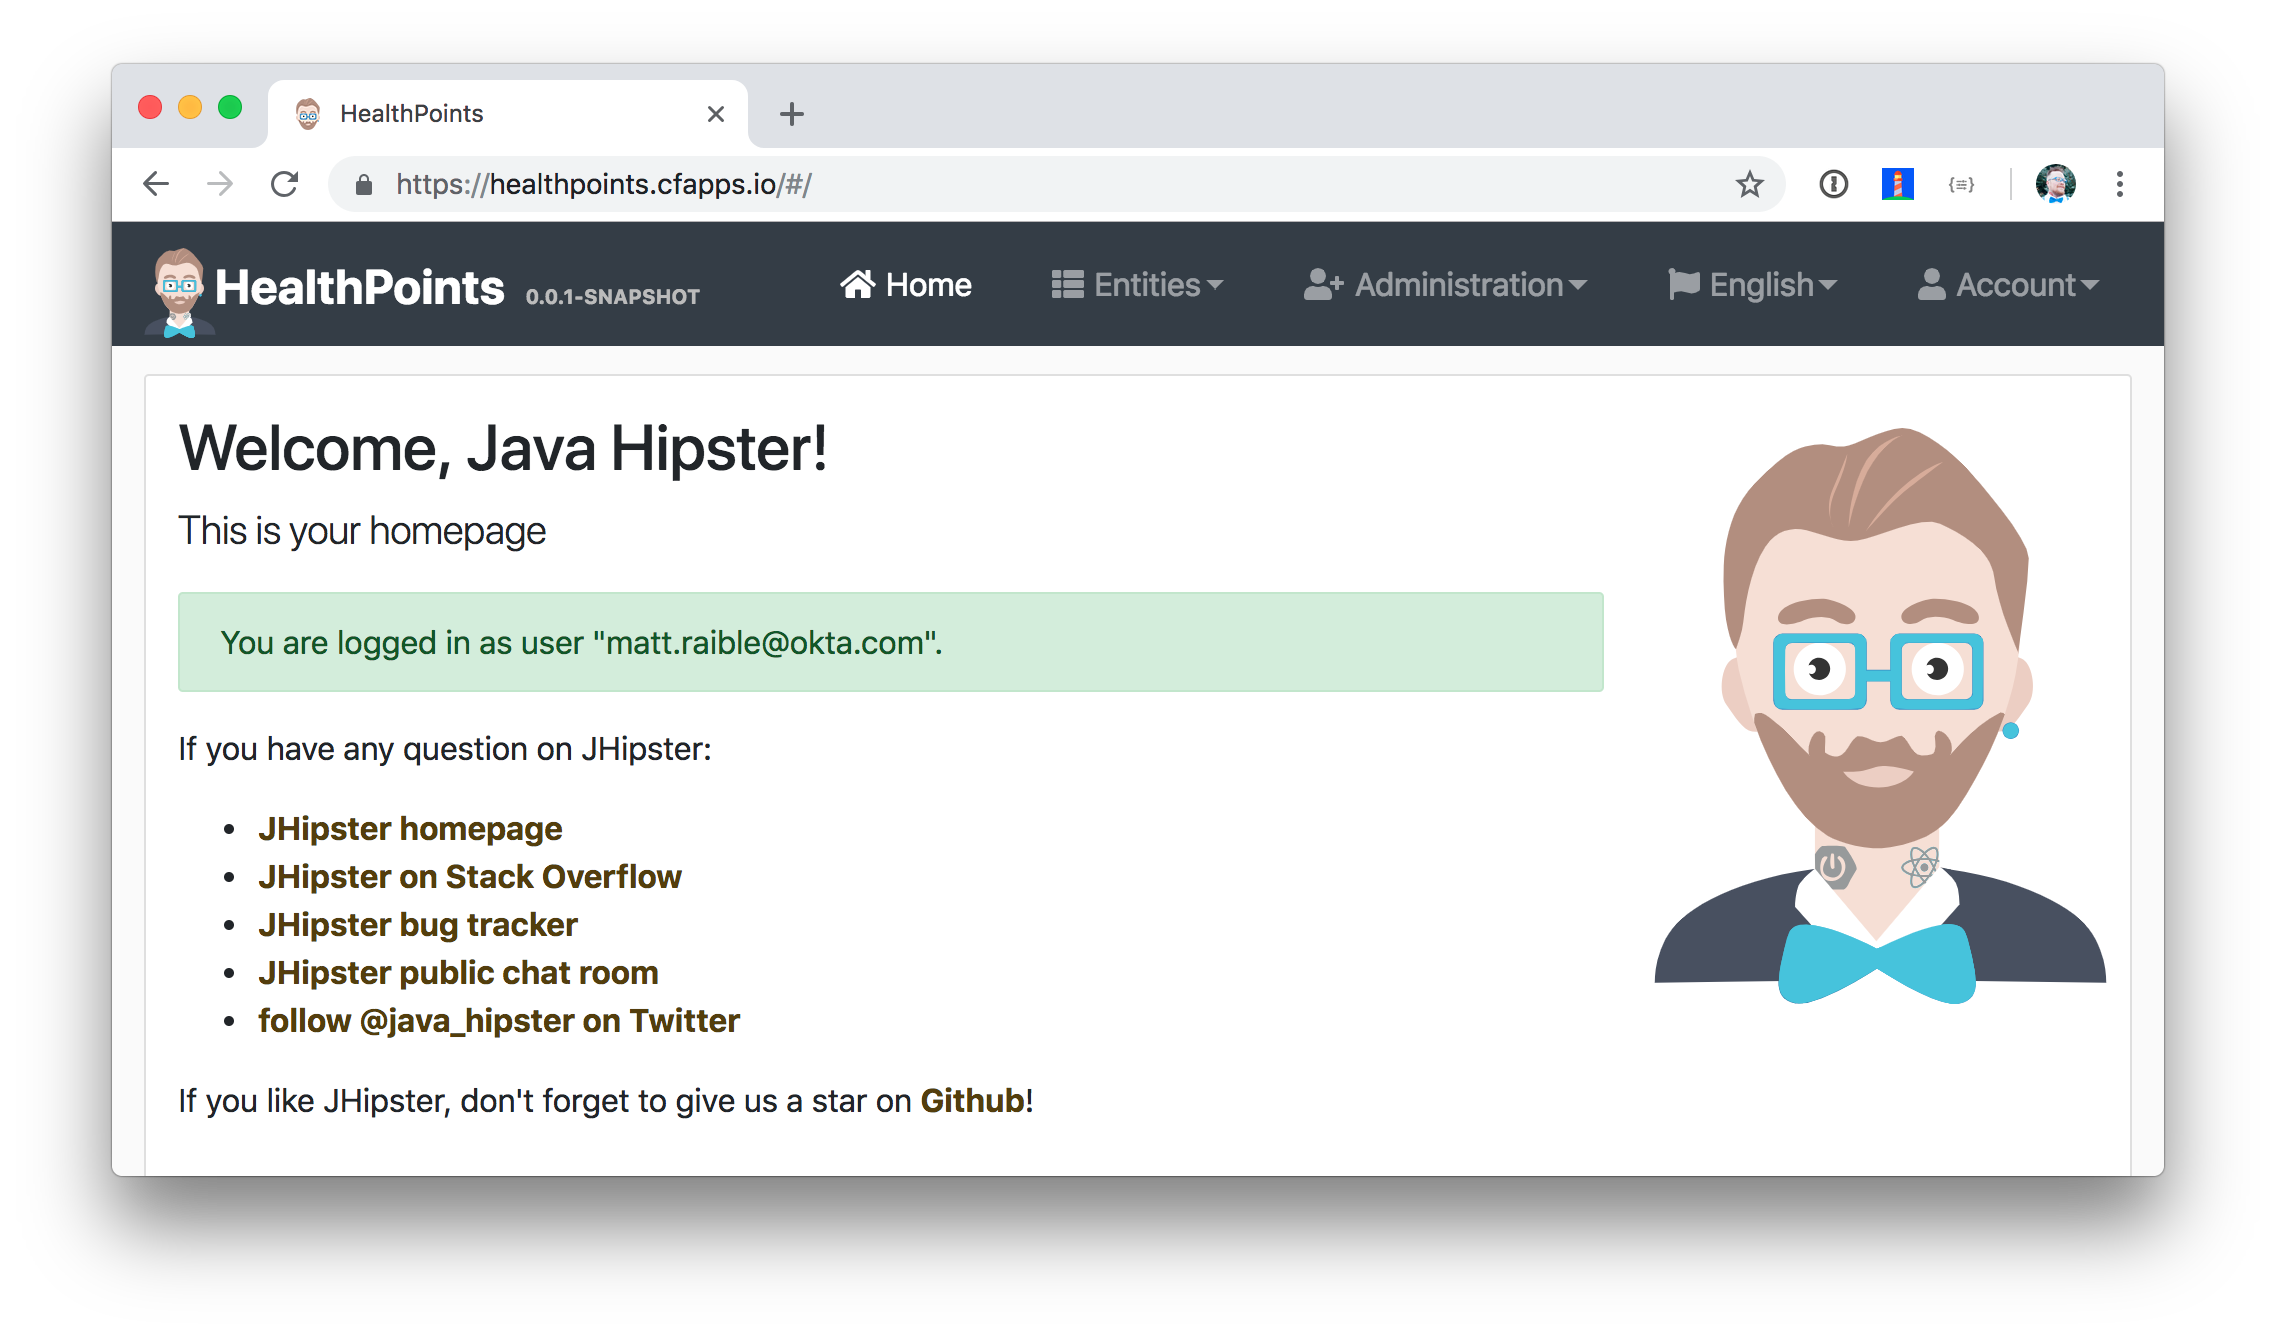 JHipster API on Cloud Foundry